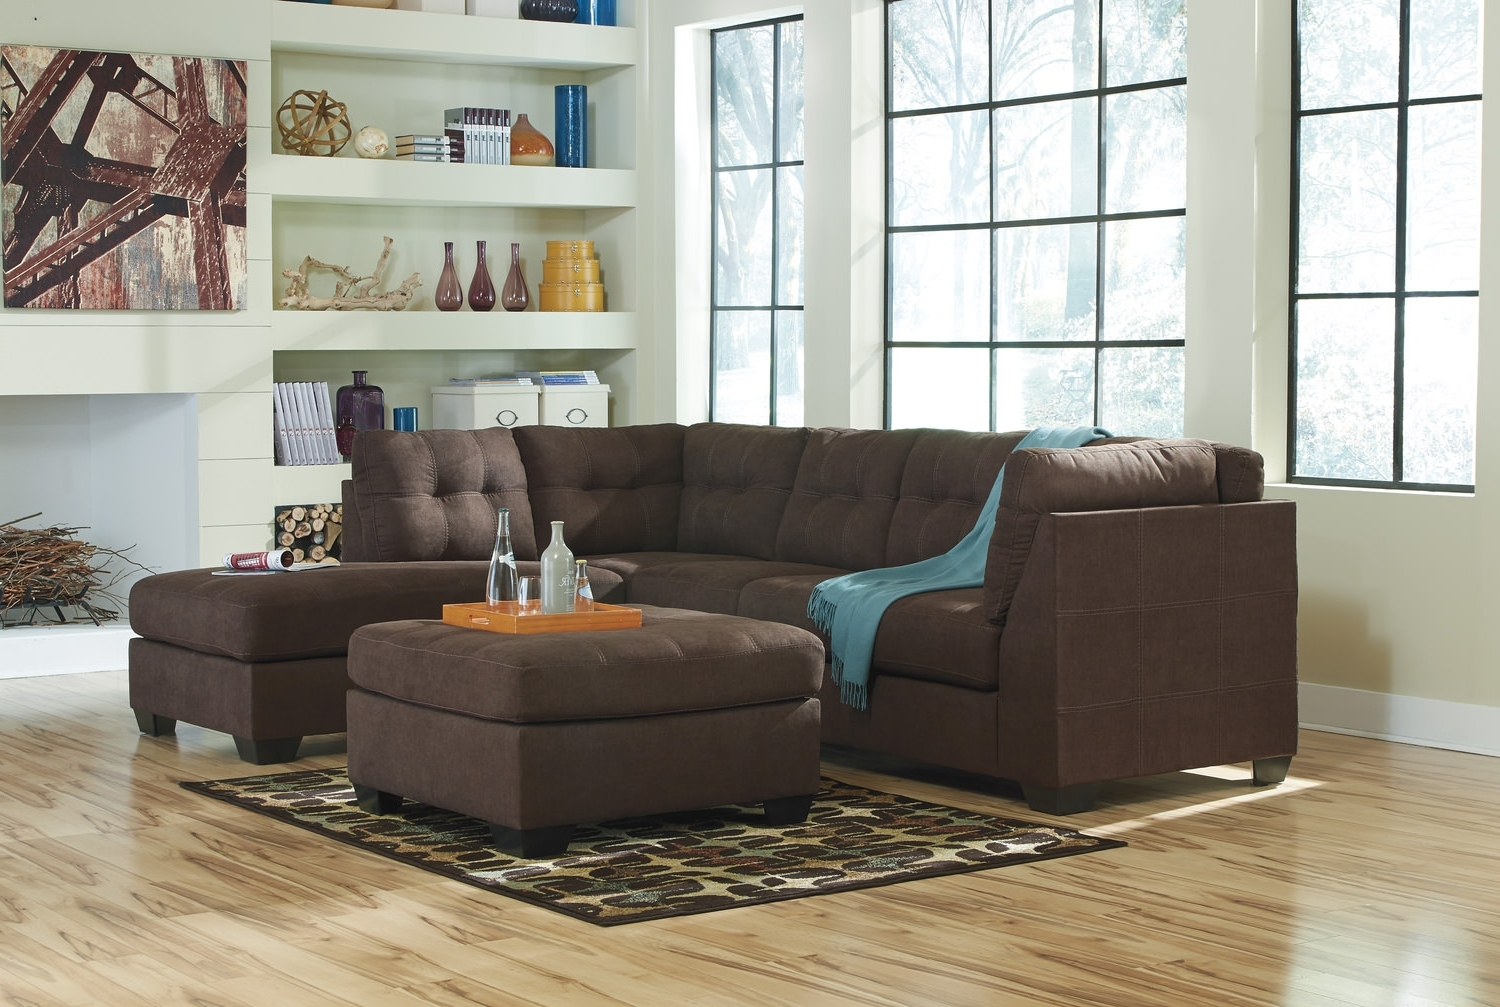 Crosby 2 Piece Modular Sectional At Hom Furniture (View 3 of 15)